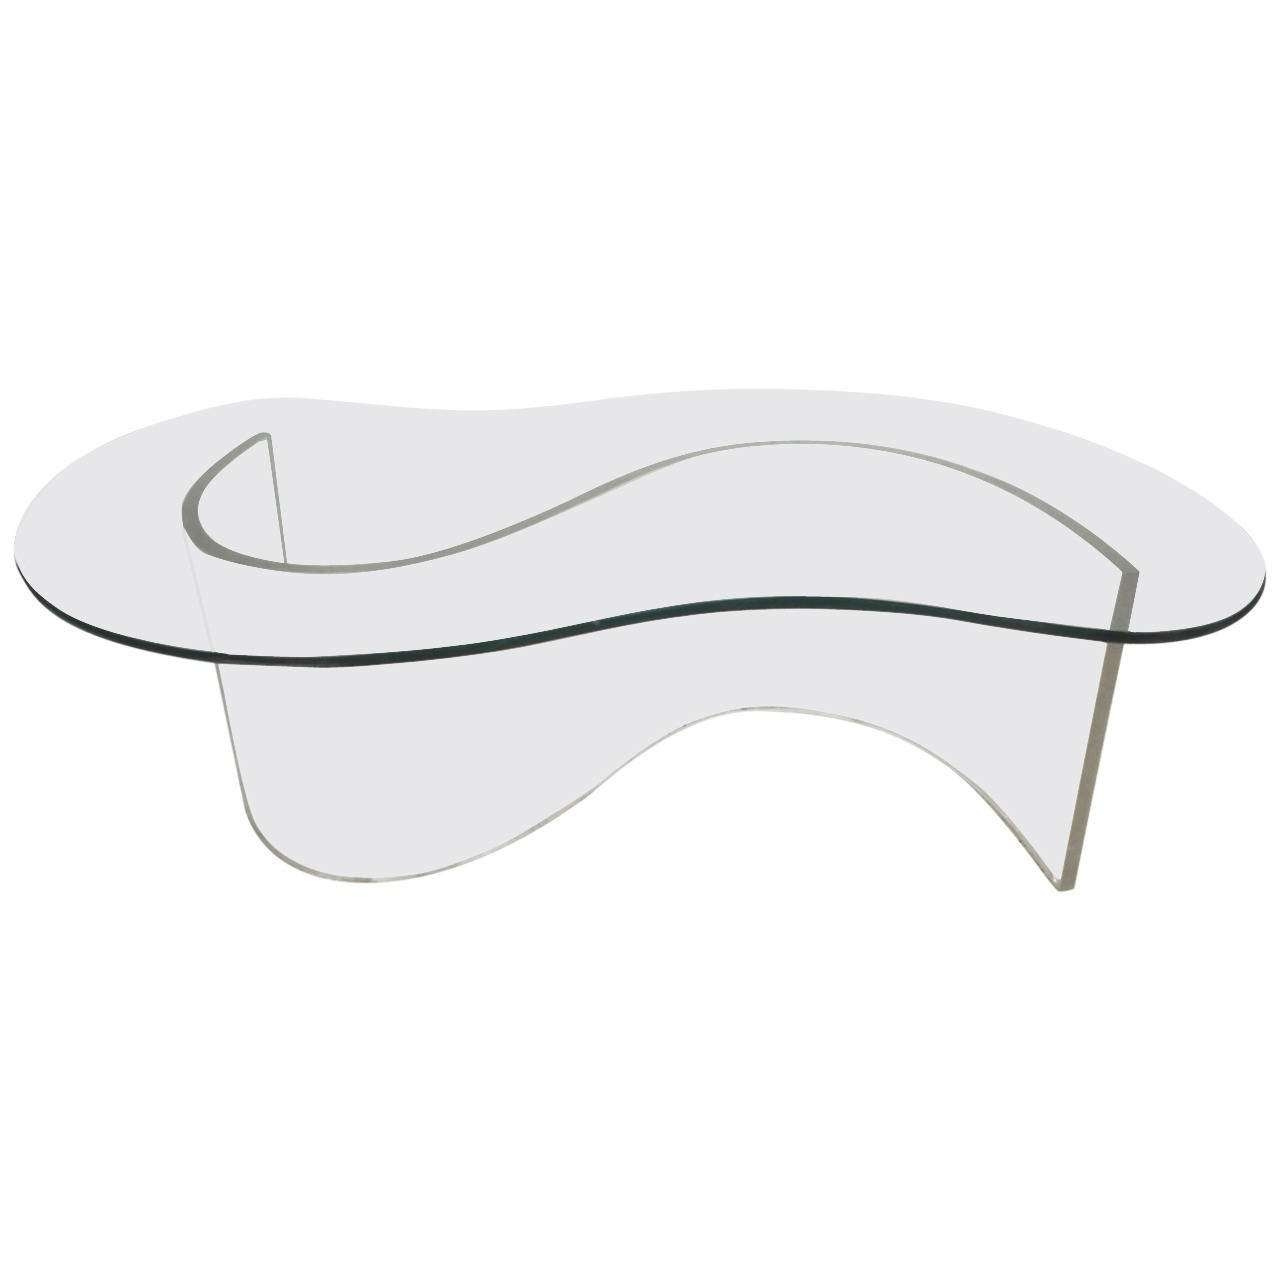 Modern Lucite And Glass Free Edge Coffee Table For Sale At 1stdibs Intended For Fashionable Free Form Coffee Tables (View 11 of 20)